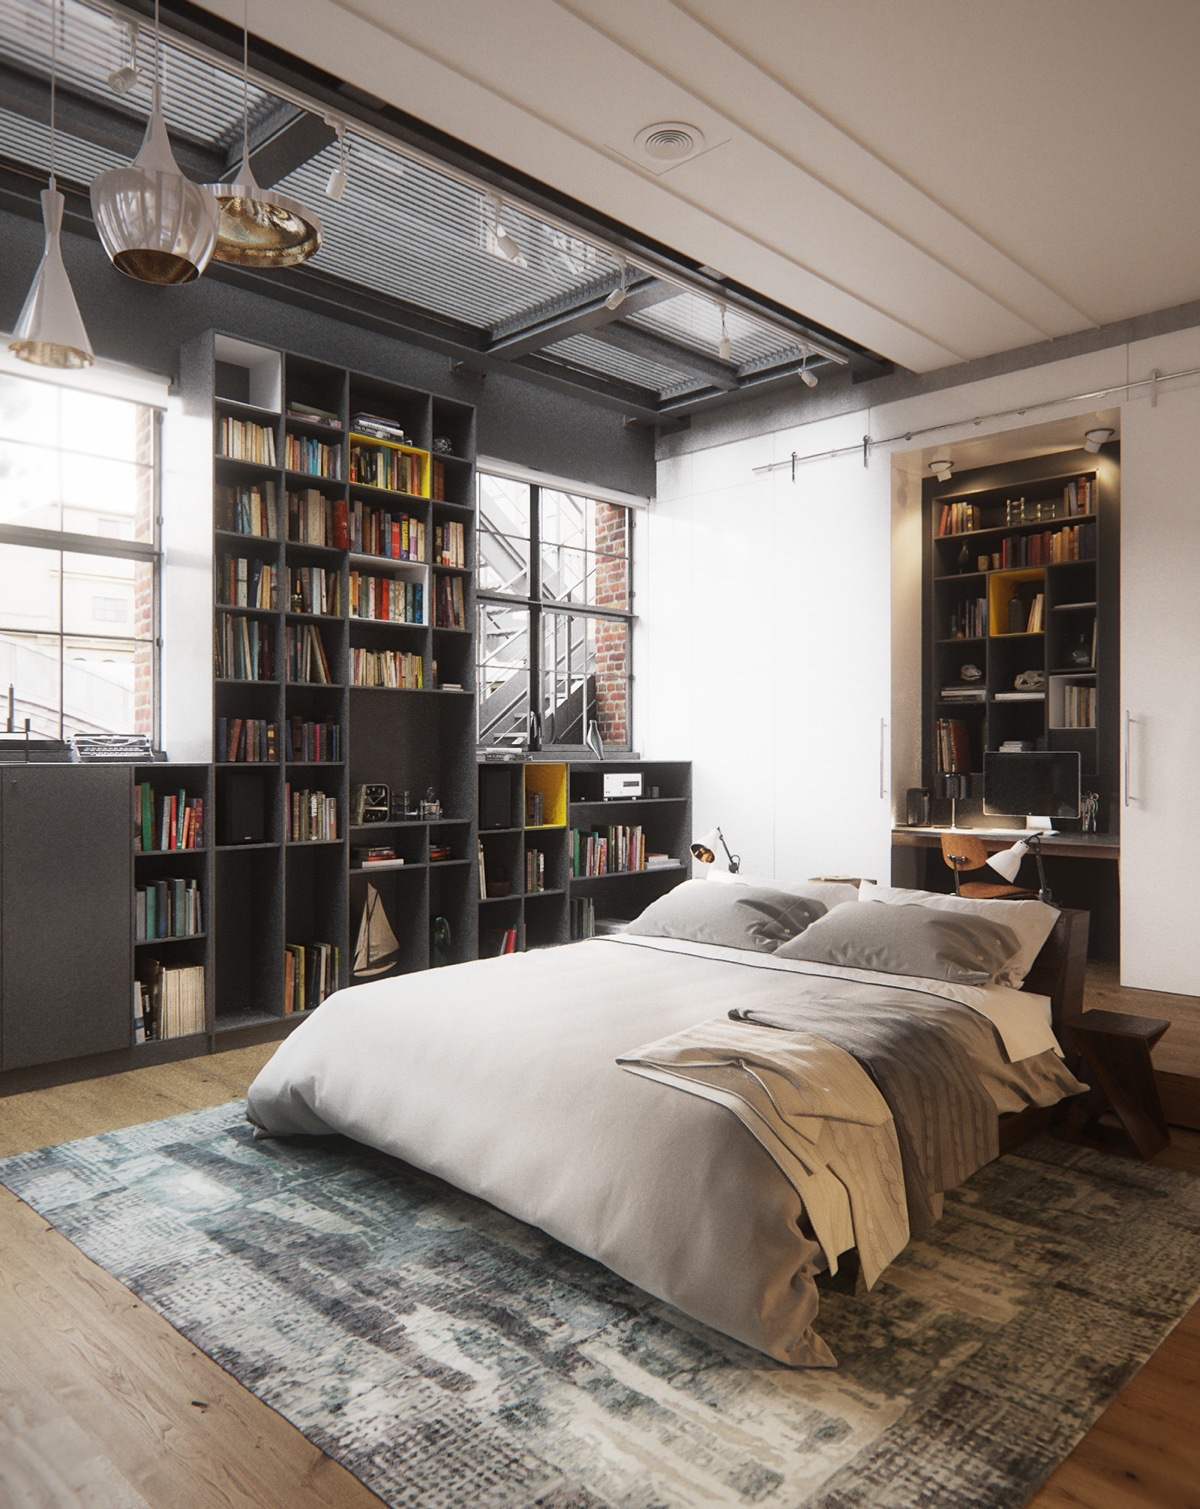 . 2 Chic and Cozy Cosmopolitan Lofts